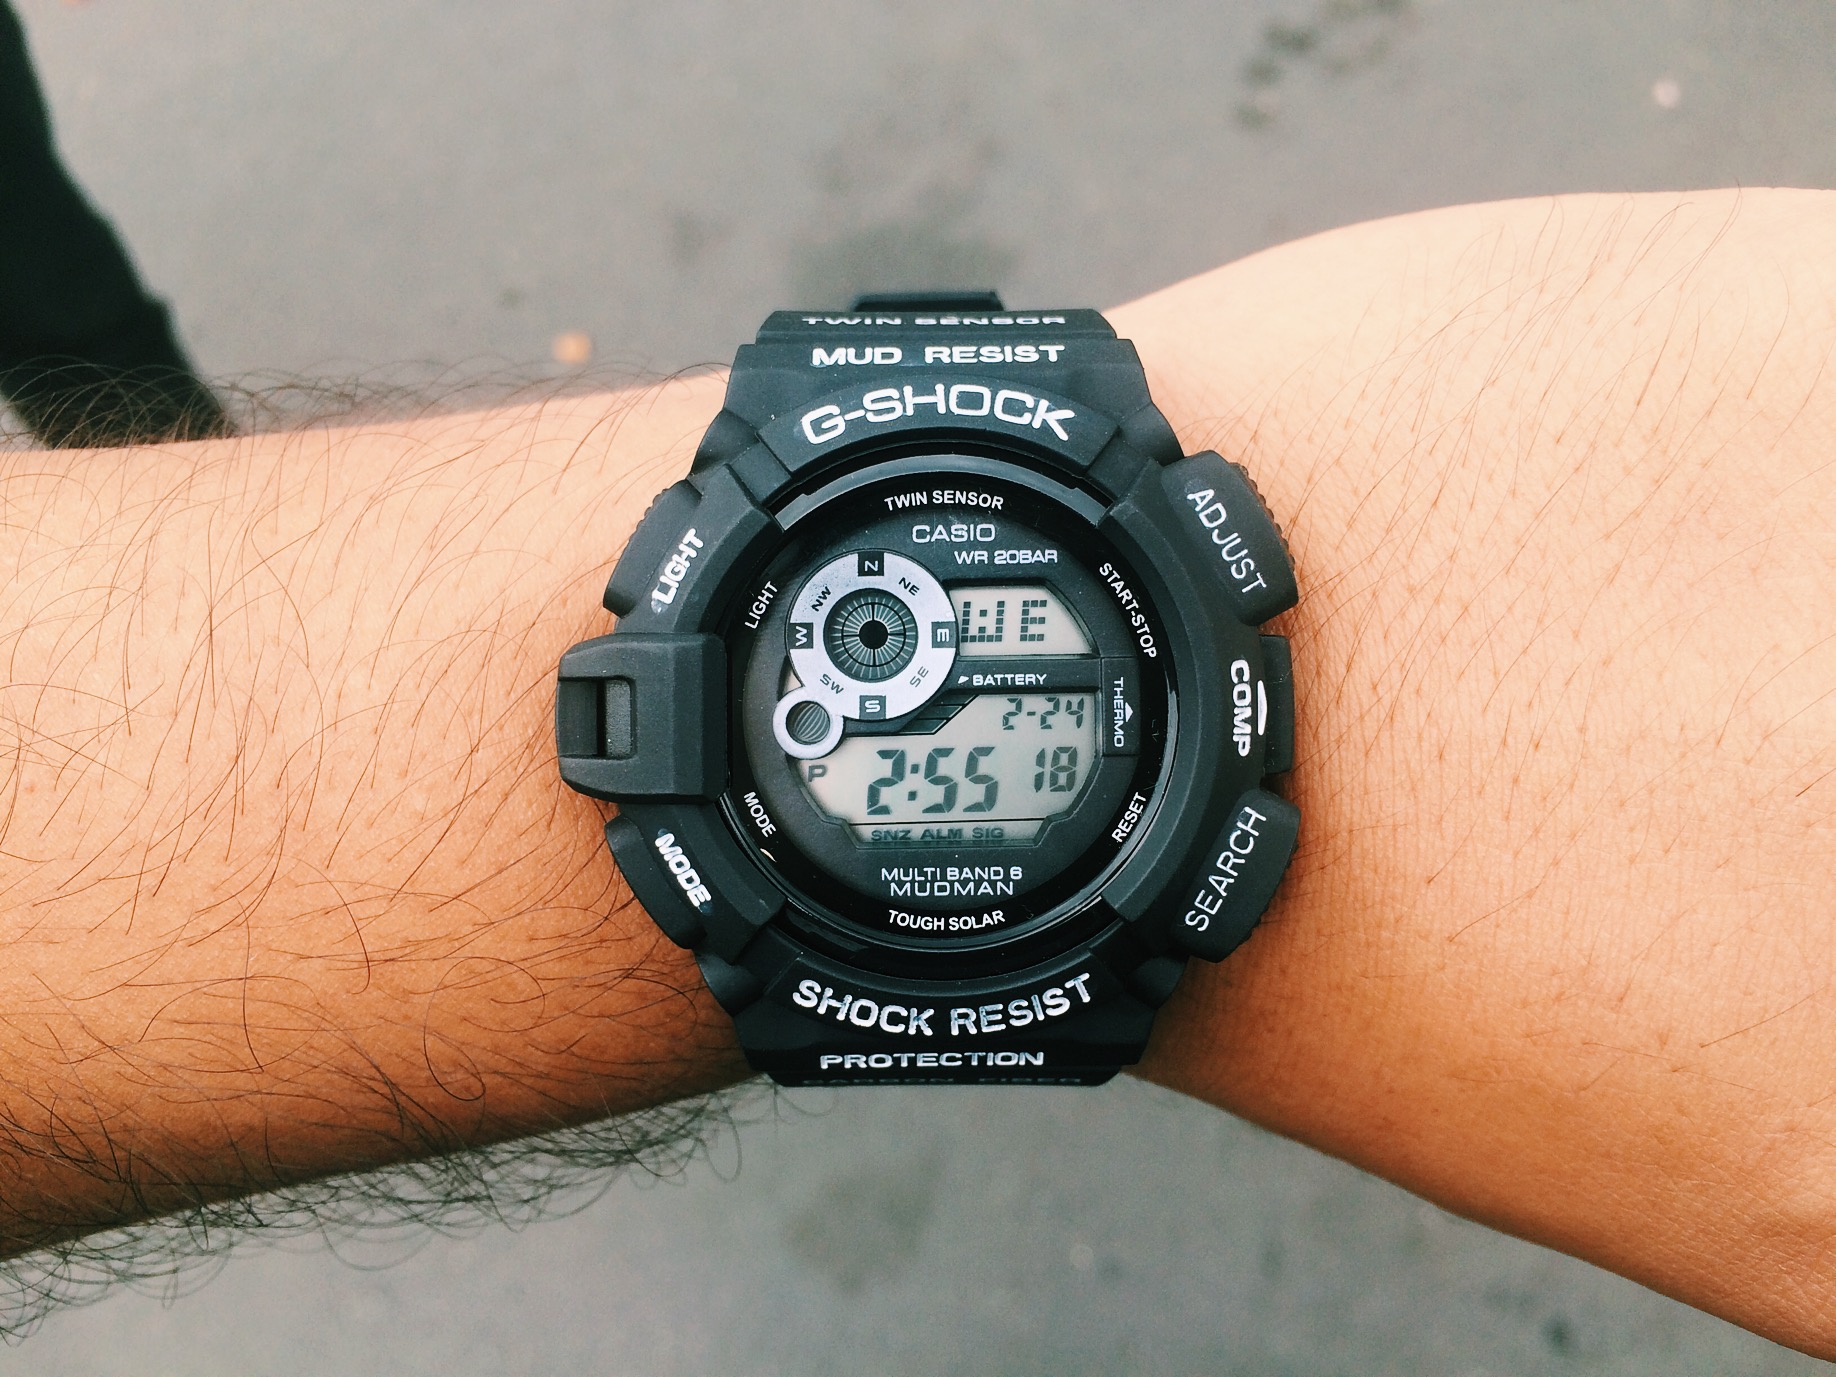 I came up on this G-Shock at Kobey's swapmeet, $18 bucks. Saw a couple of friends there making that paper.